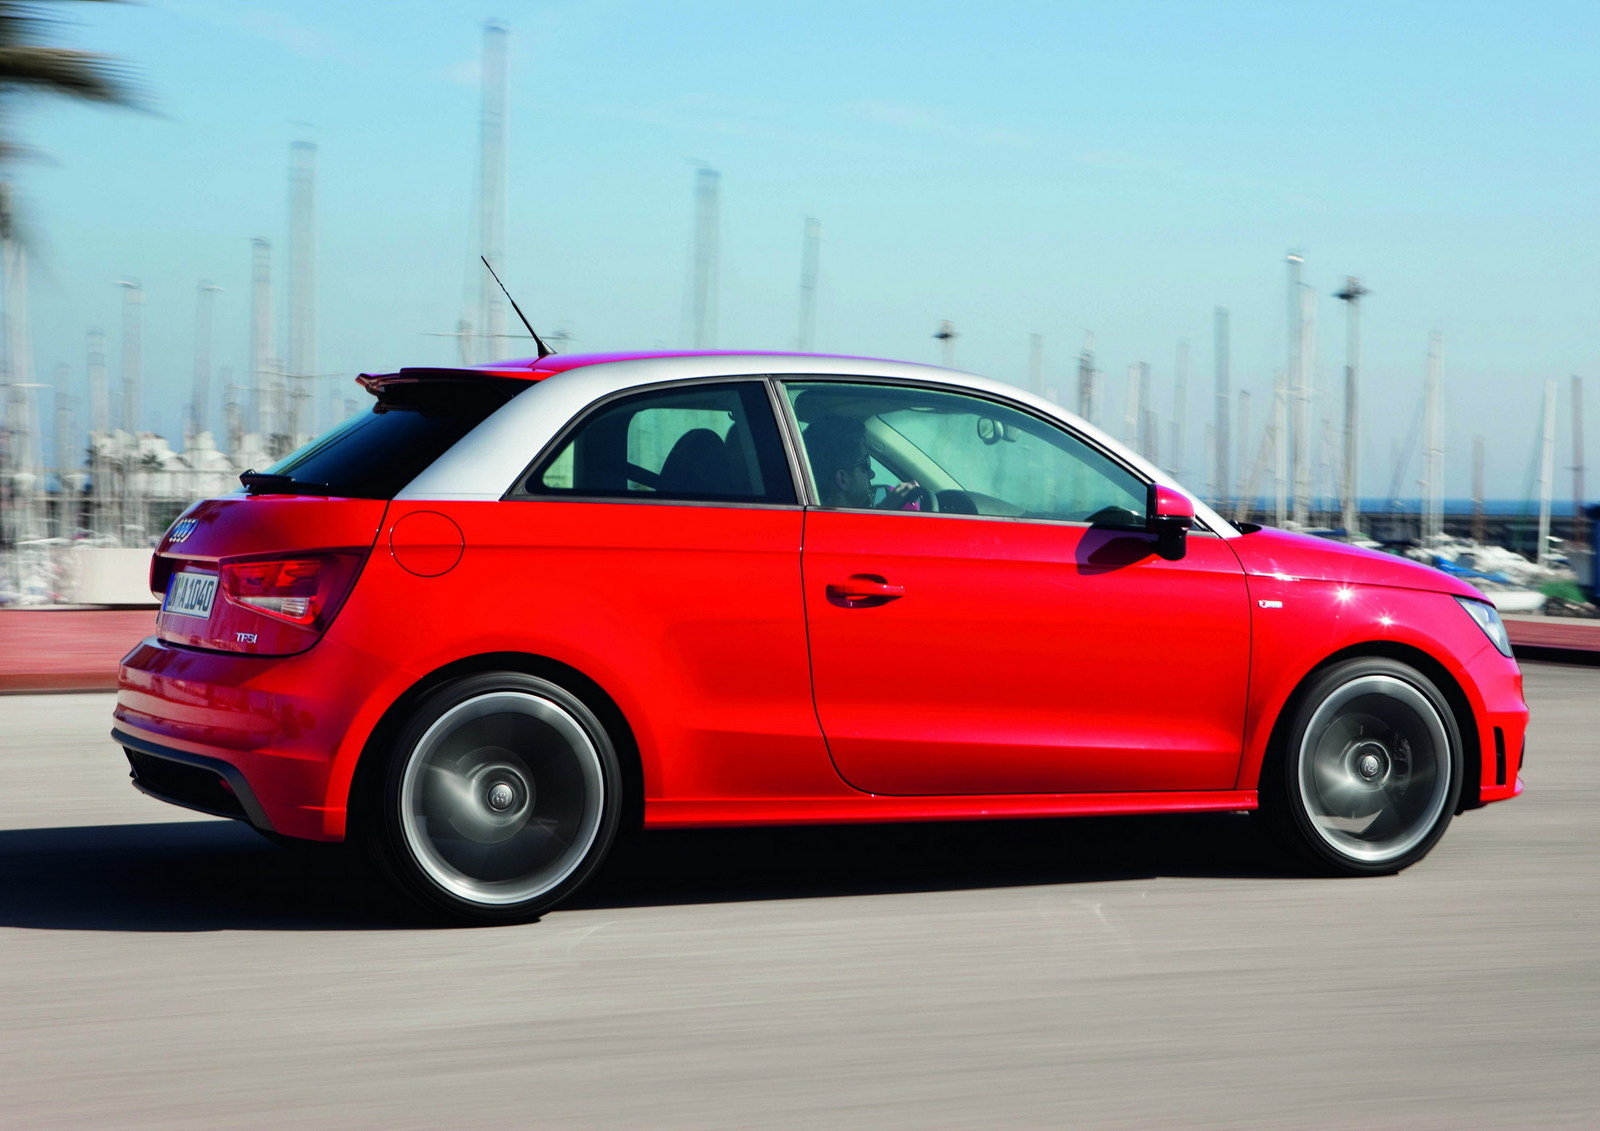 2011 audi a1 s line picture 351500 car review top speed. Black Bedroom Furniture Sets. Home Design Ideas